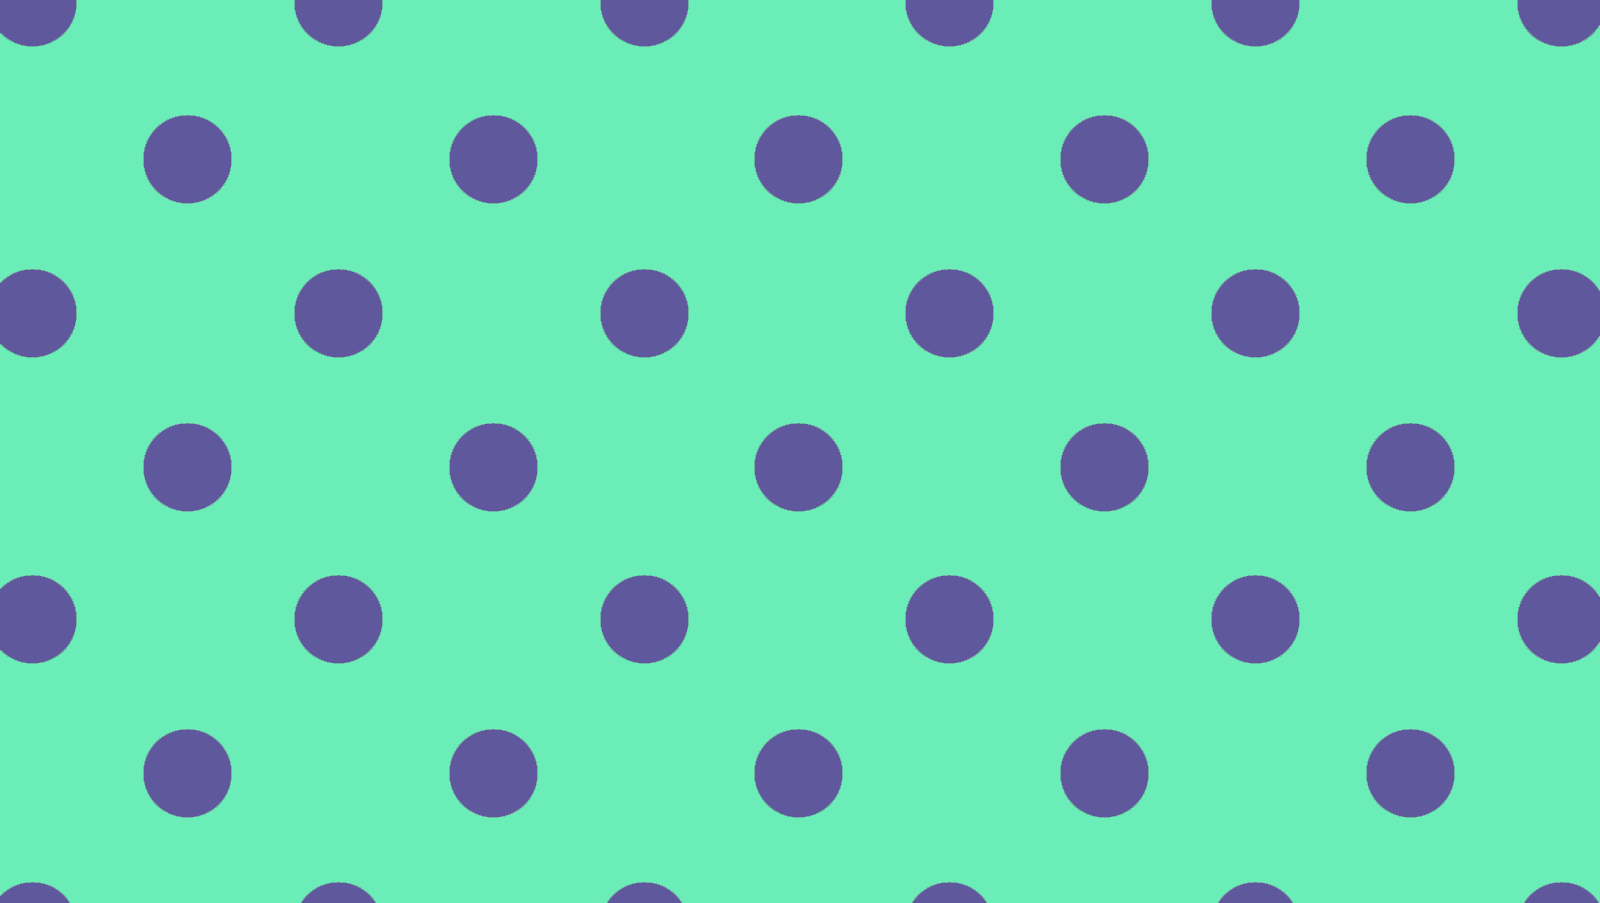 green polka dots desktop background #3446